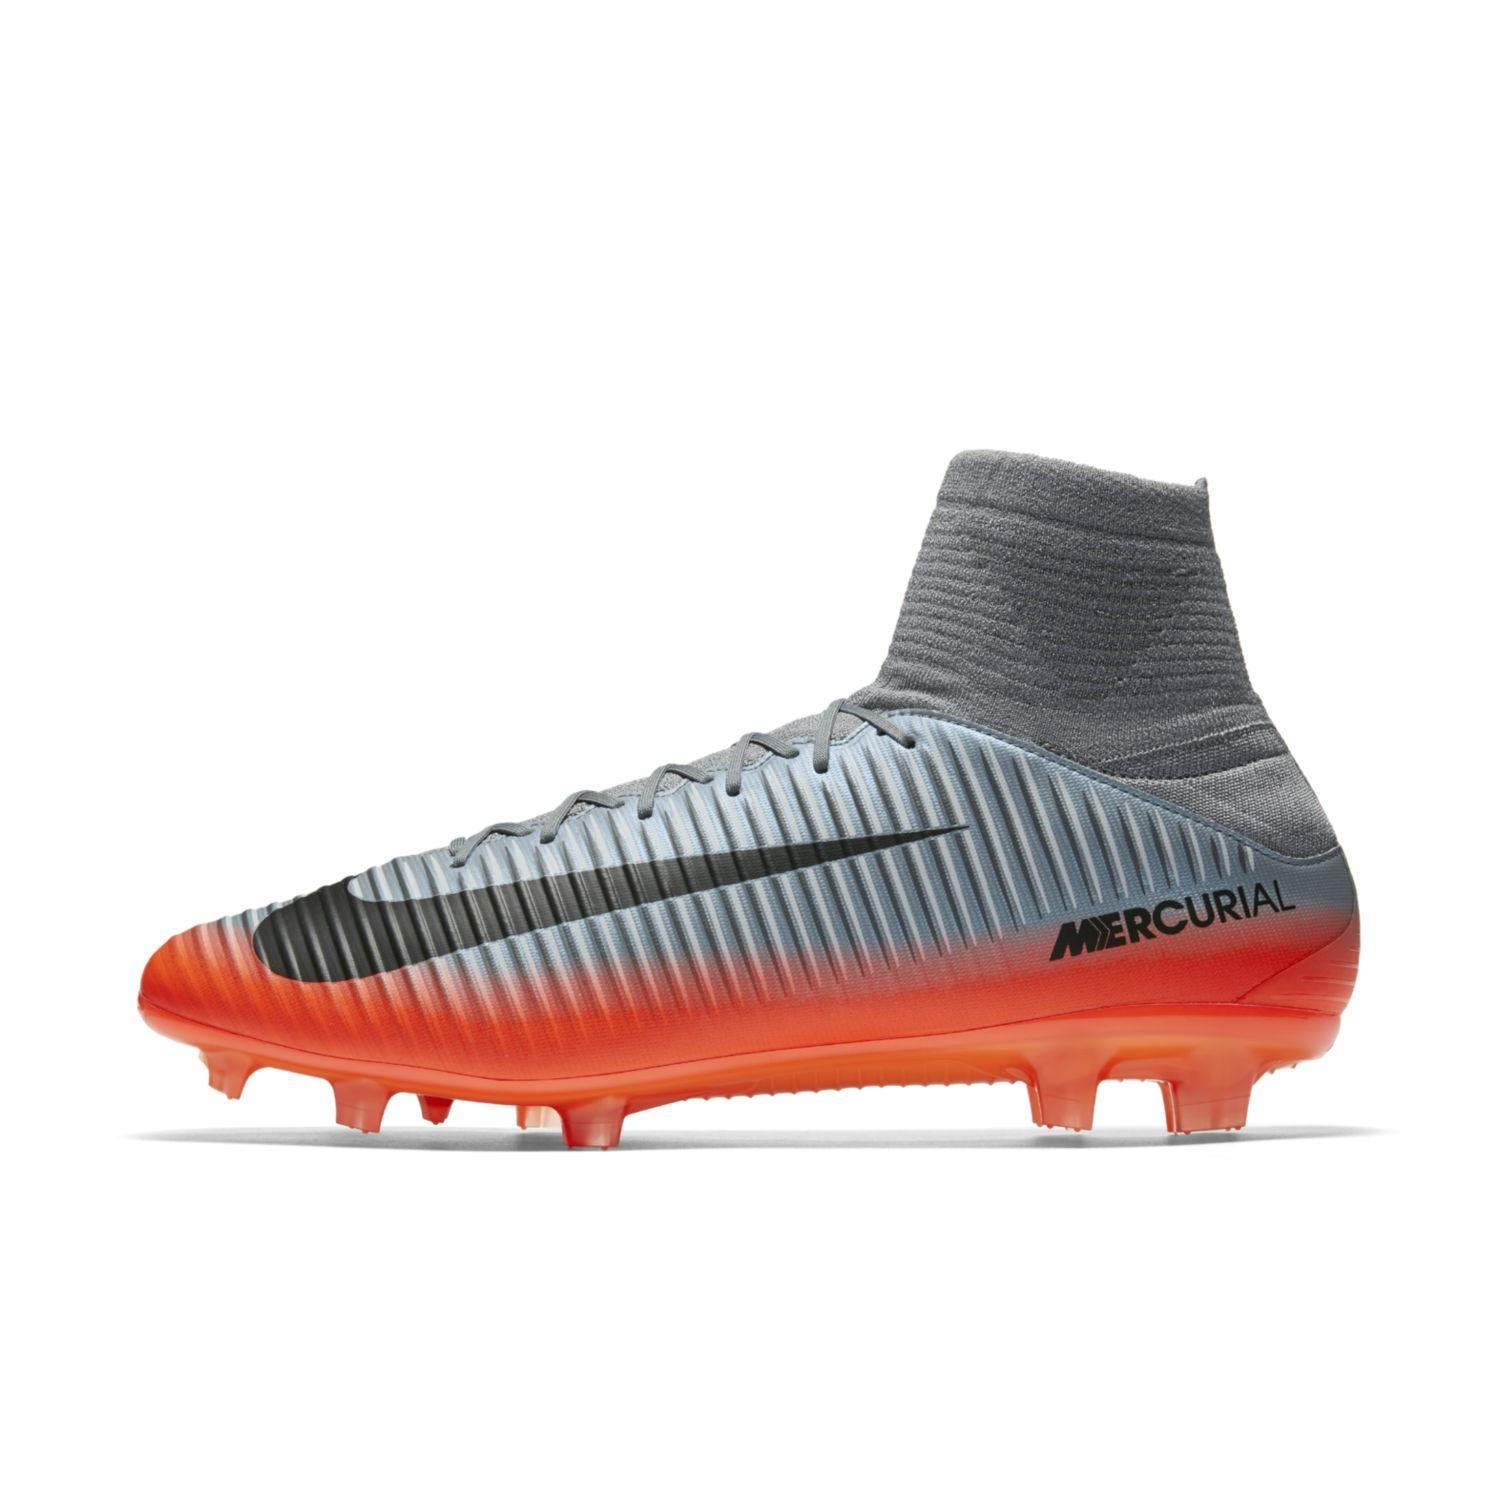 Nike Chaussures De Football Mercurial Veloce Iii Dynamic Fit Cr7 Fg   Cristiano Ronaldo